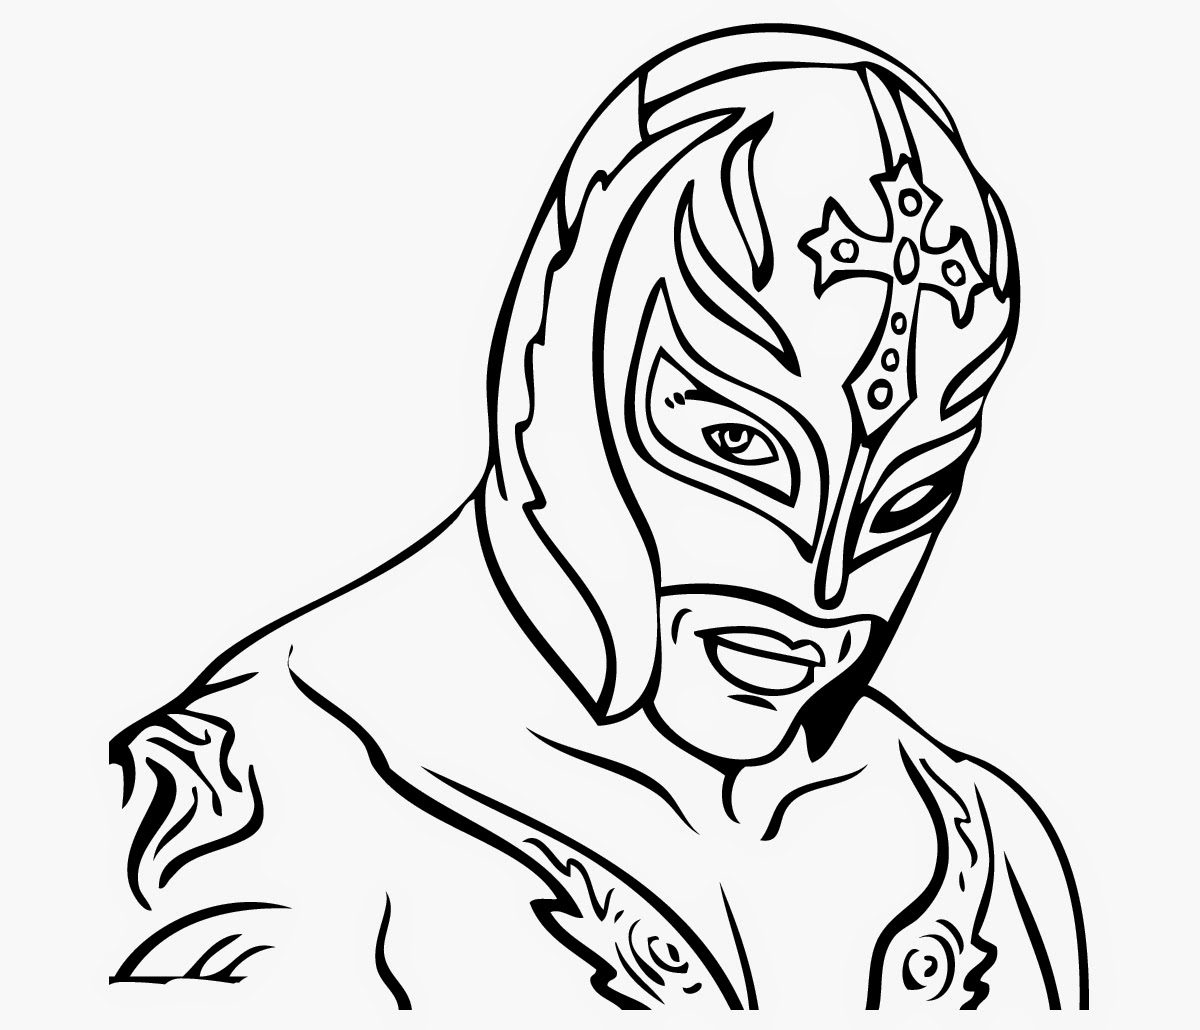 wwe rey mysterio coloring pages picture of rey mysterio coloring page picture of rey mysterio coloring pages rey wwe